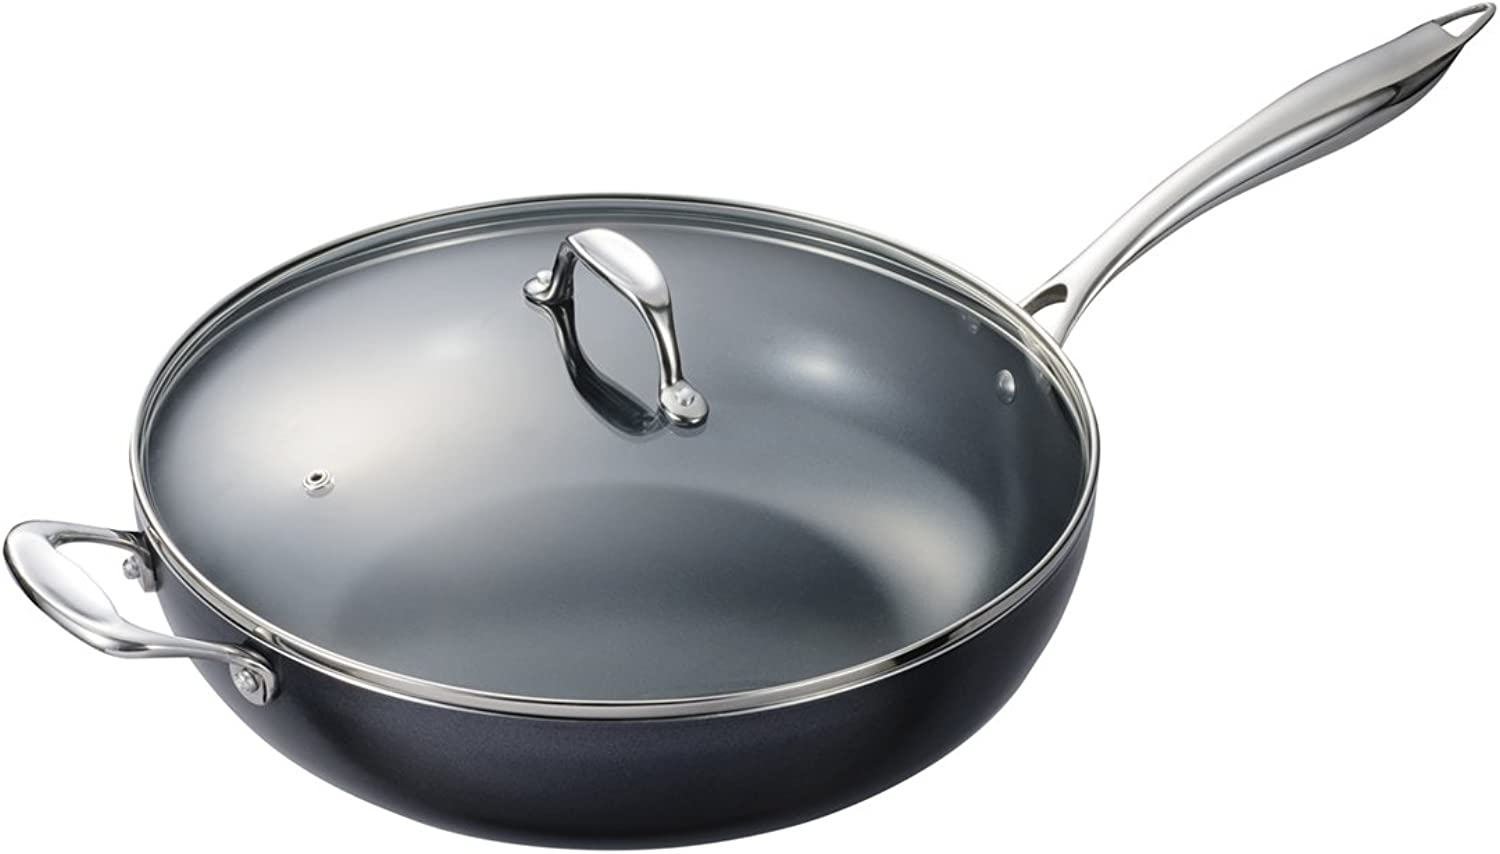 Kyocera CFP32W BK Ceramic Coated Nonstick 12.5- inch Wok with Tempered Glass Lid